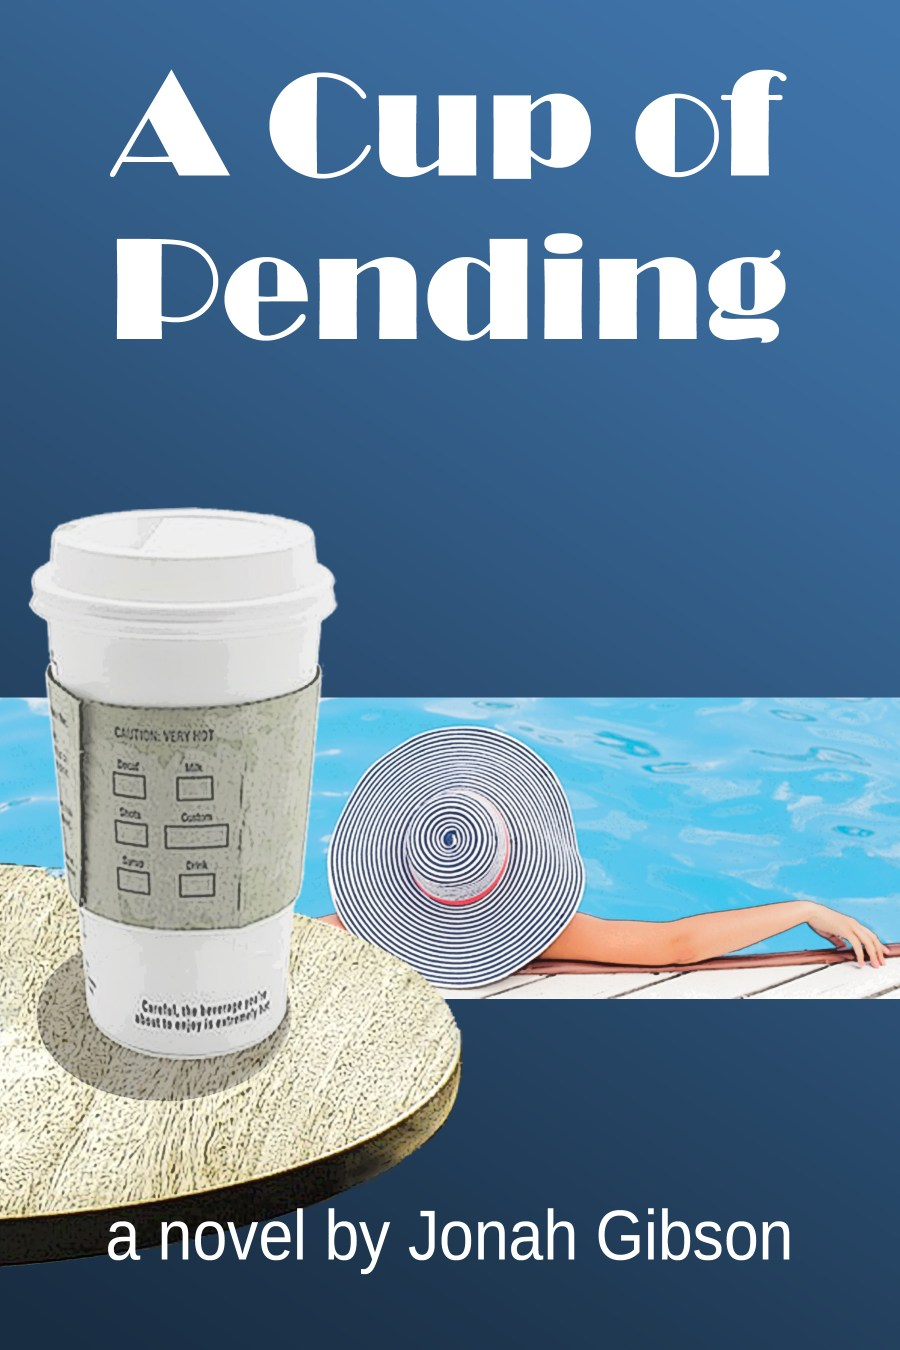 Book Cover for novel, A Cup of Pending by Jonah Gibson